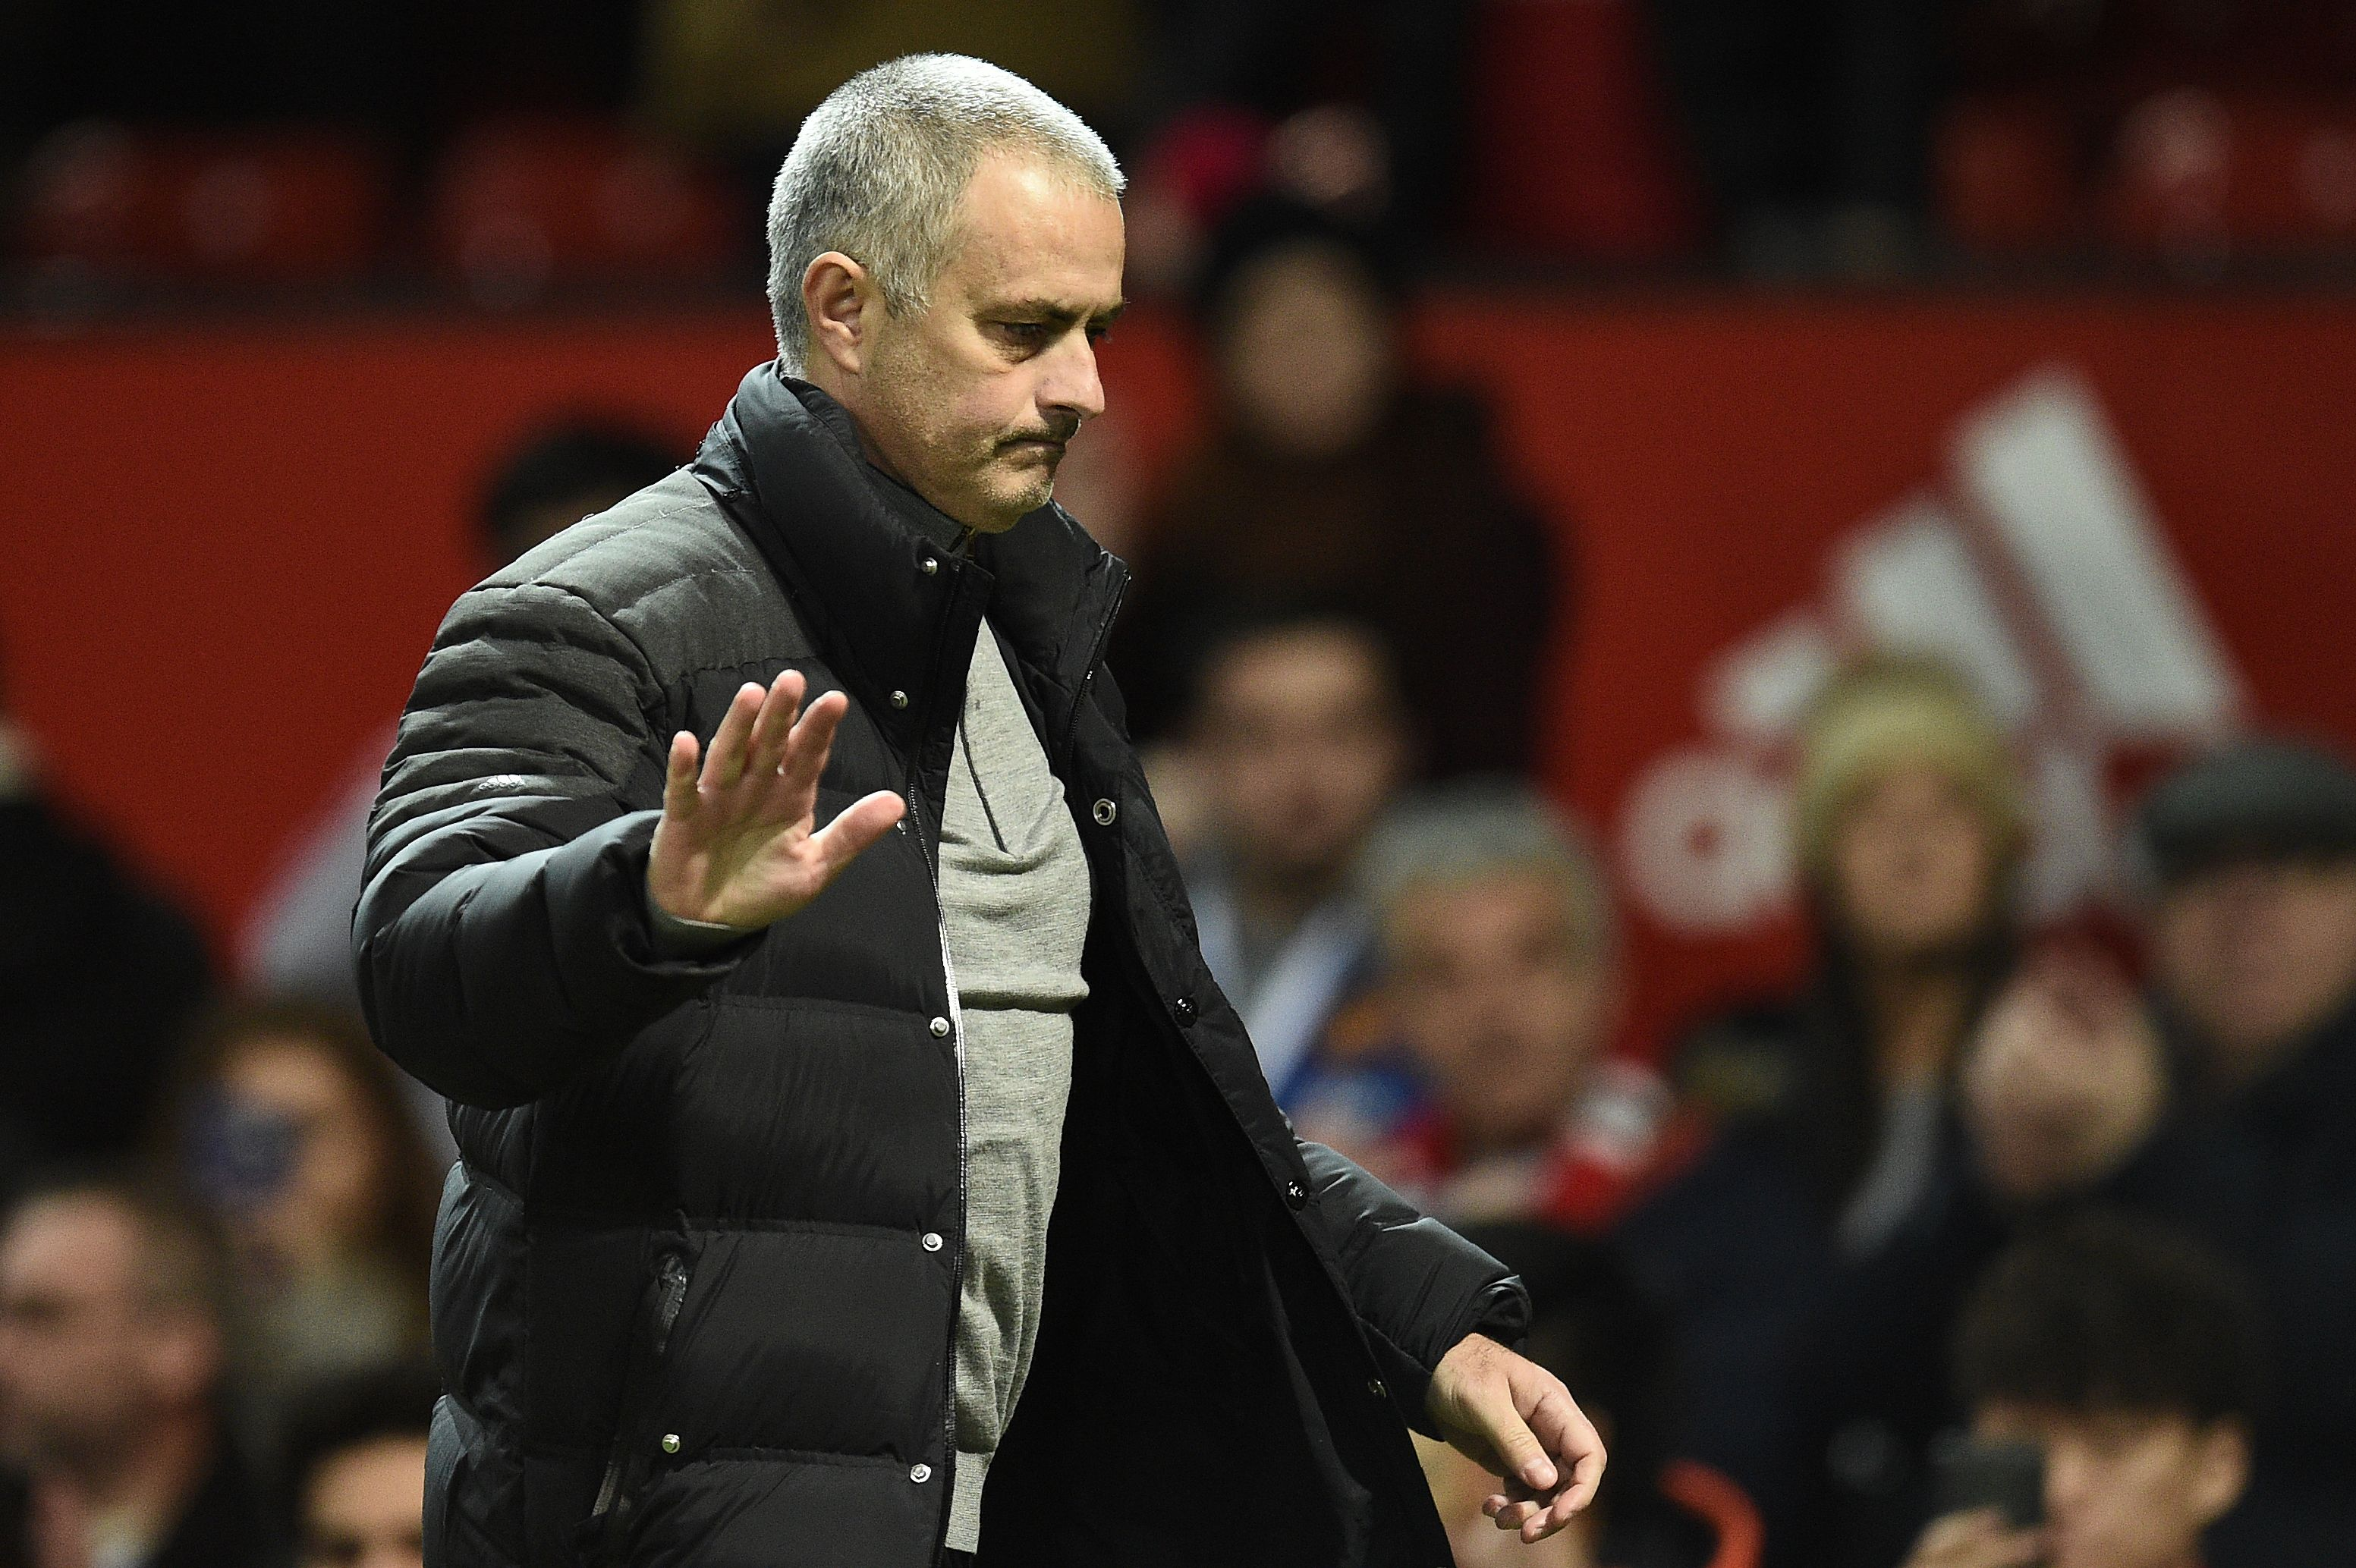 manchester united lineup , man united lineup, man united starters, man u lineups , man united starting lineup, Manchester united start time, man united leicester tv channel, man united leicester when is it today, man united leicester lineups, united leicester lineup